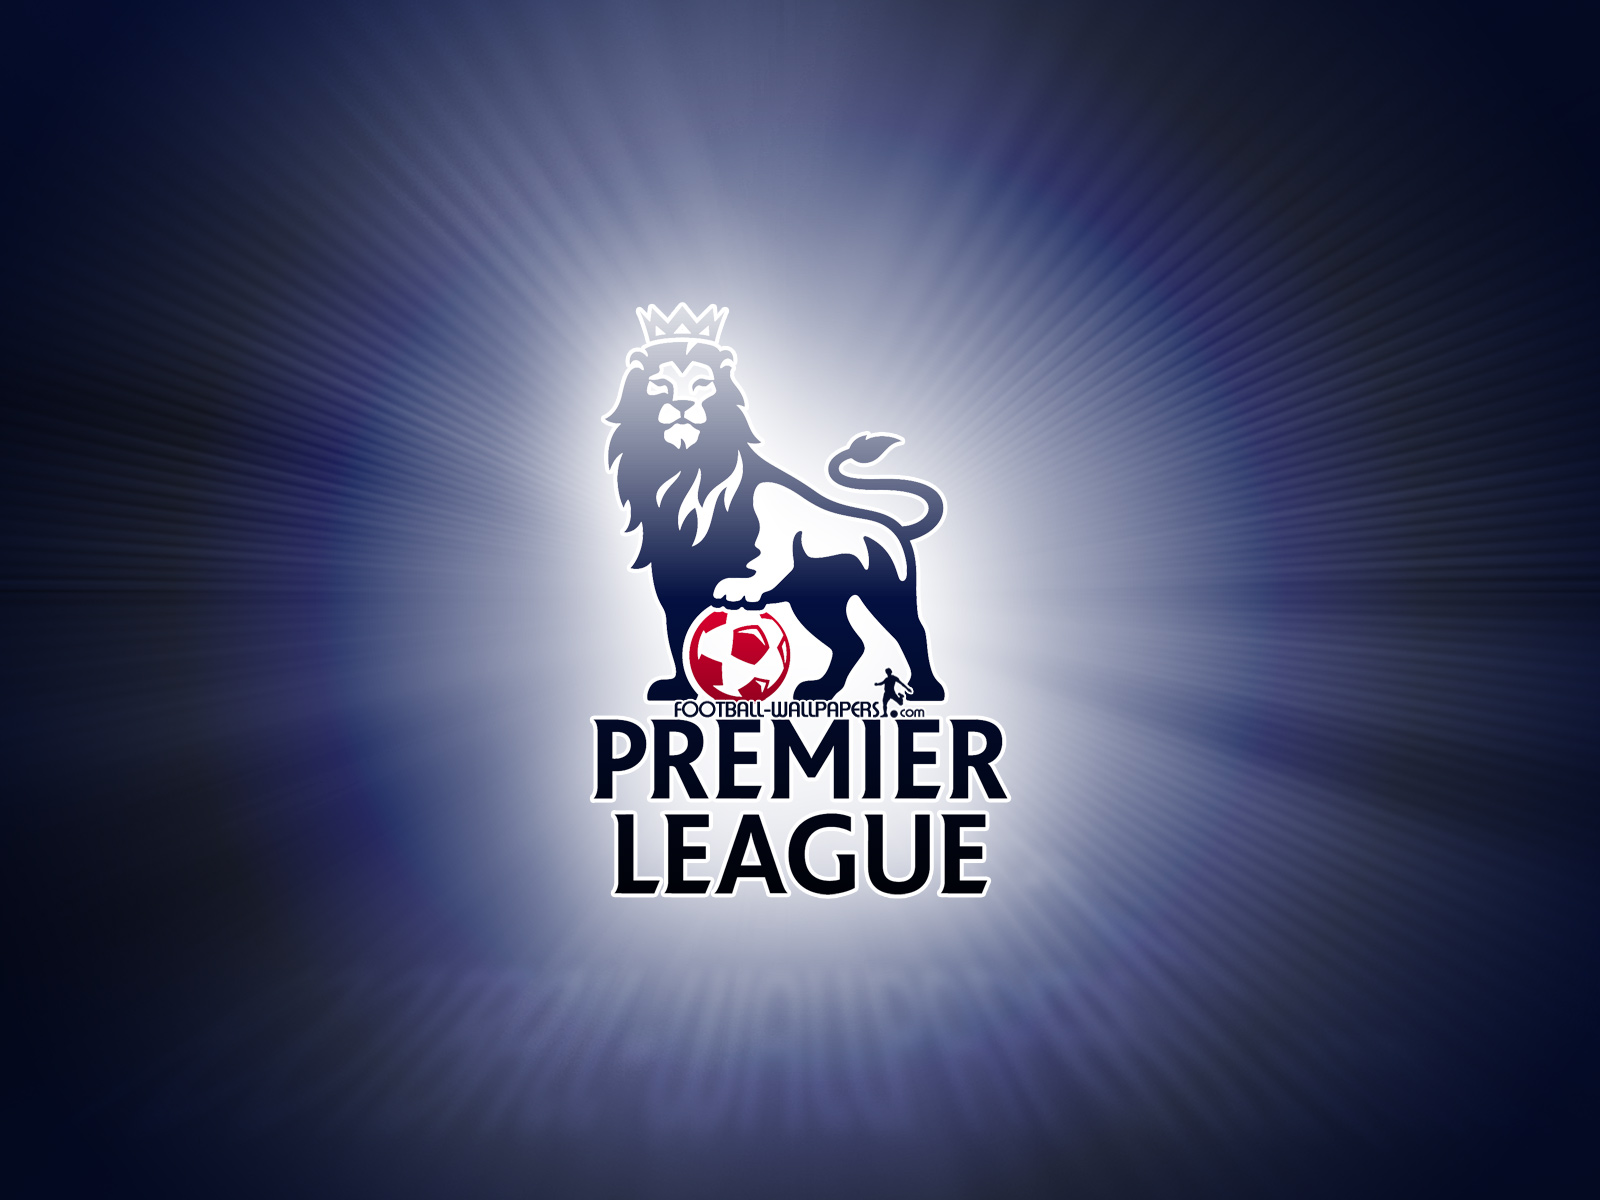 Premier League fixtures: day 1